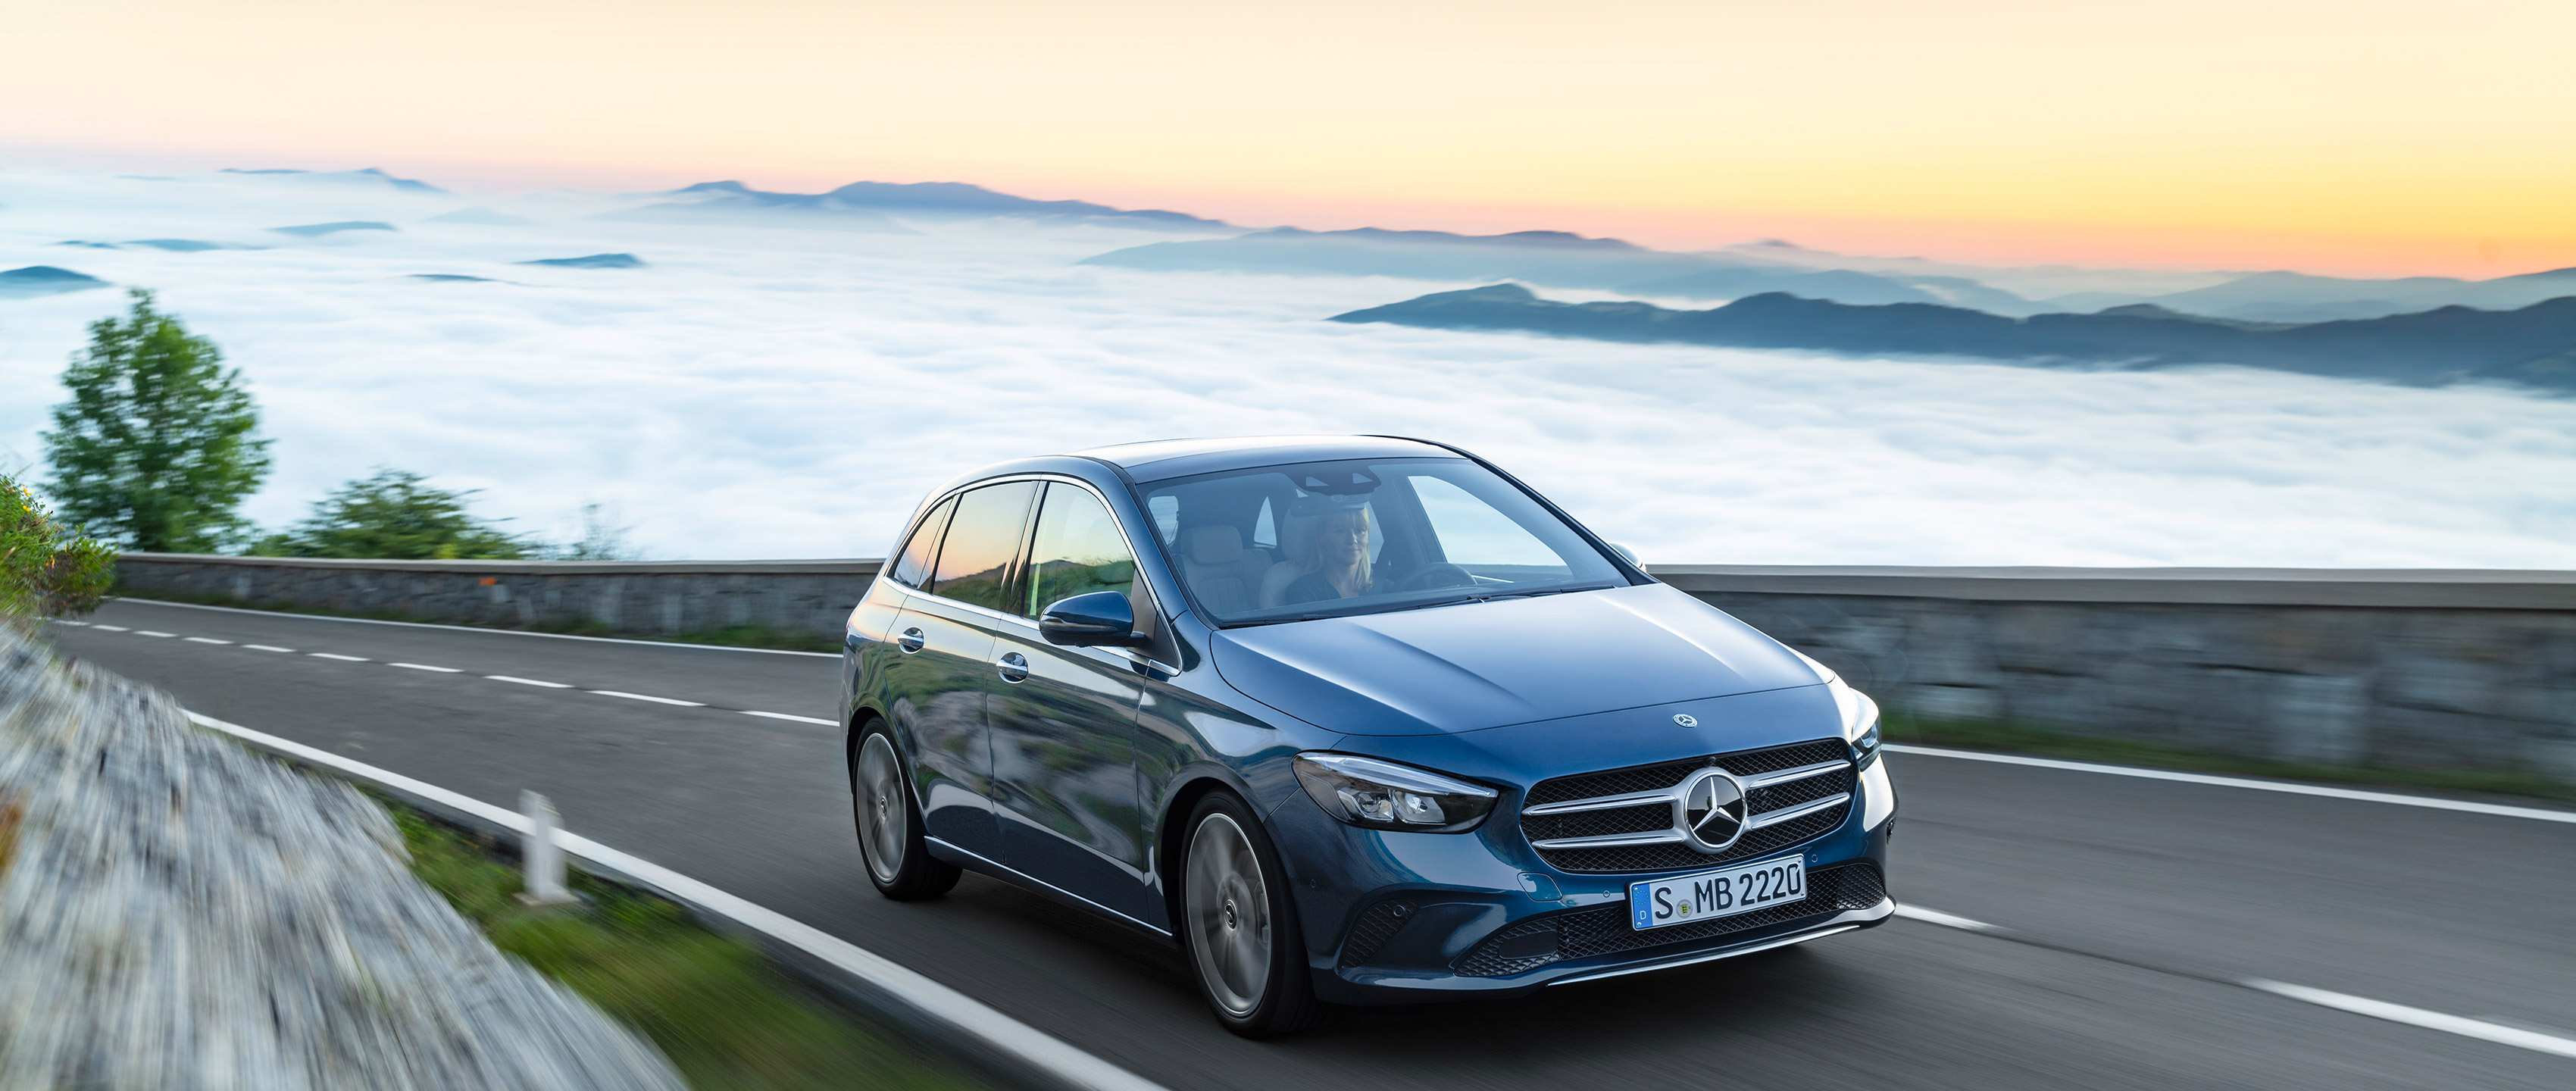 54 New Best Mercedes 2019 B Class Price And Release Date Images with Best Mercedes 2019 B Class Price And Release Date